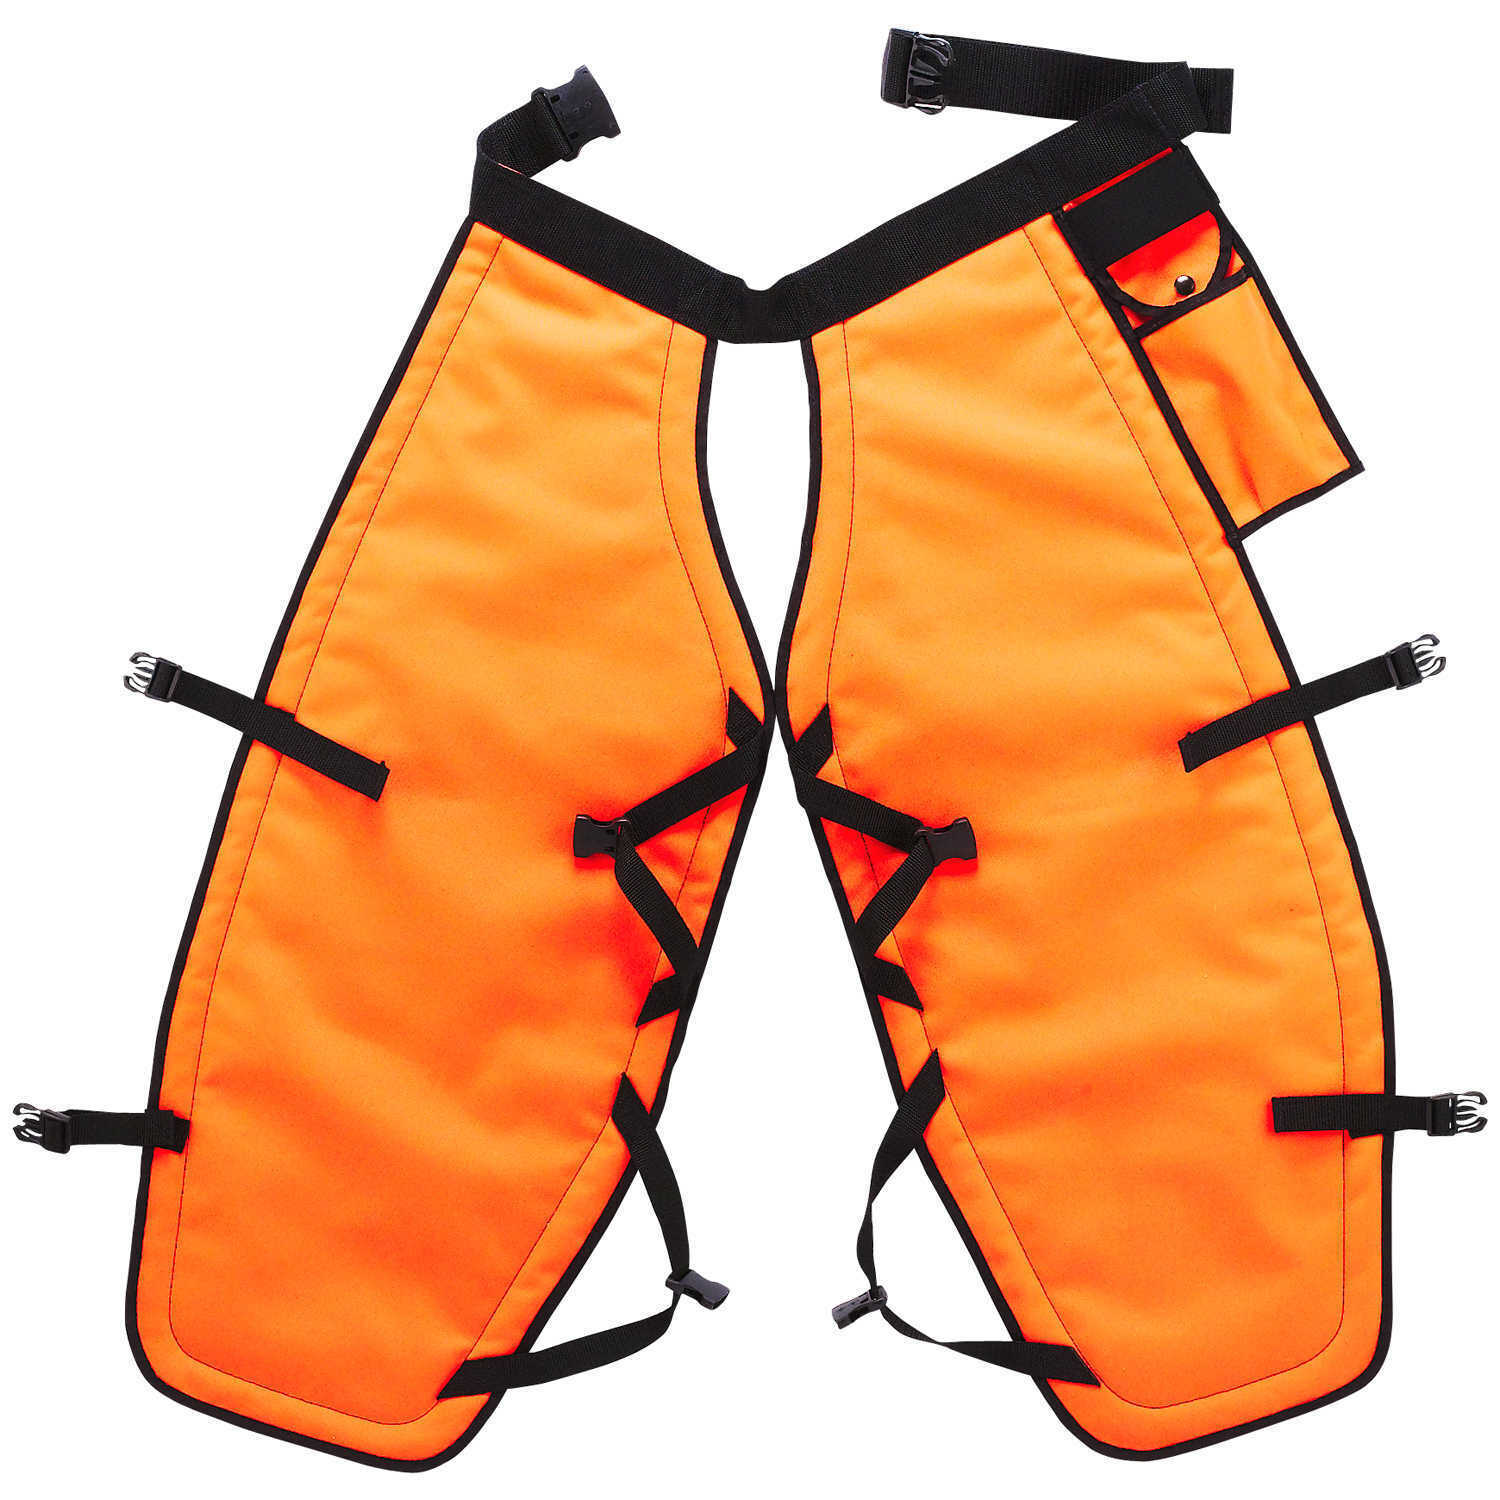 "PGI 5-Ply Para-Aramid Chain Saw Chaps orange 32""L"